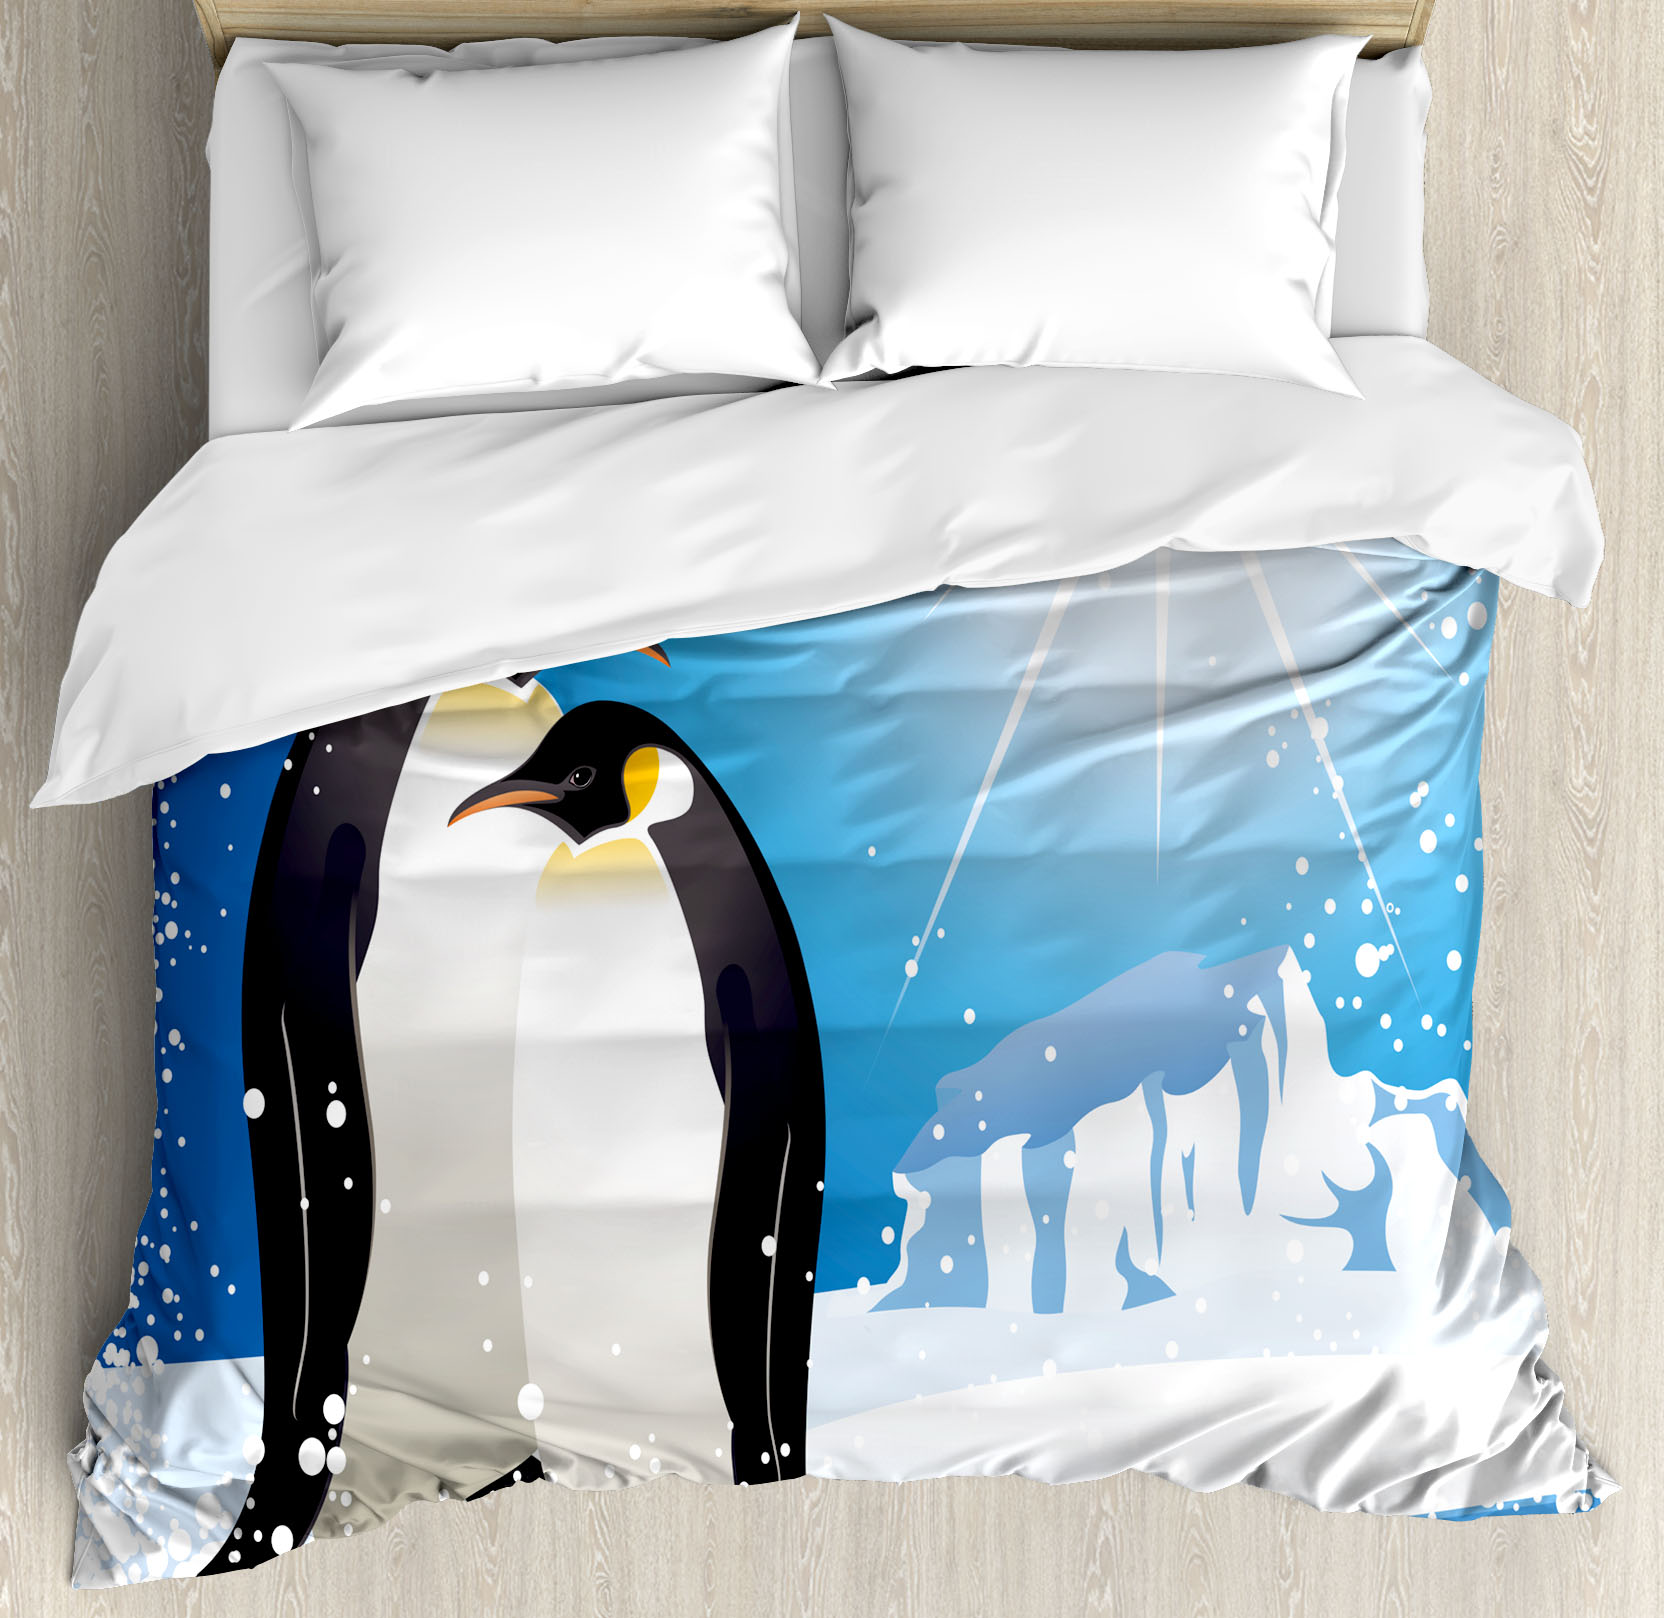 Winter Queen Size Duvet Cover Set, Cute Penguins on Iceland at Arctic Snowy Frozen Climate... by Kozmos